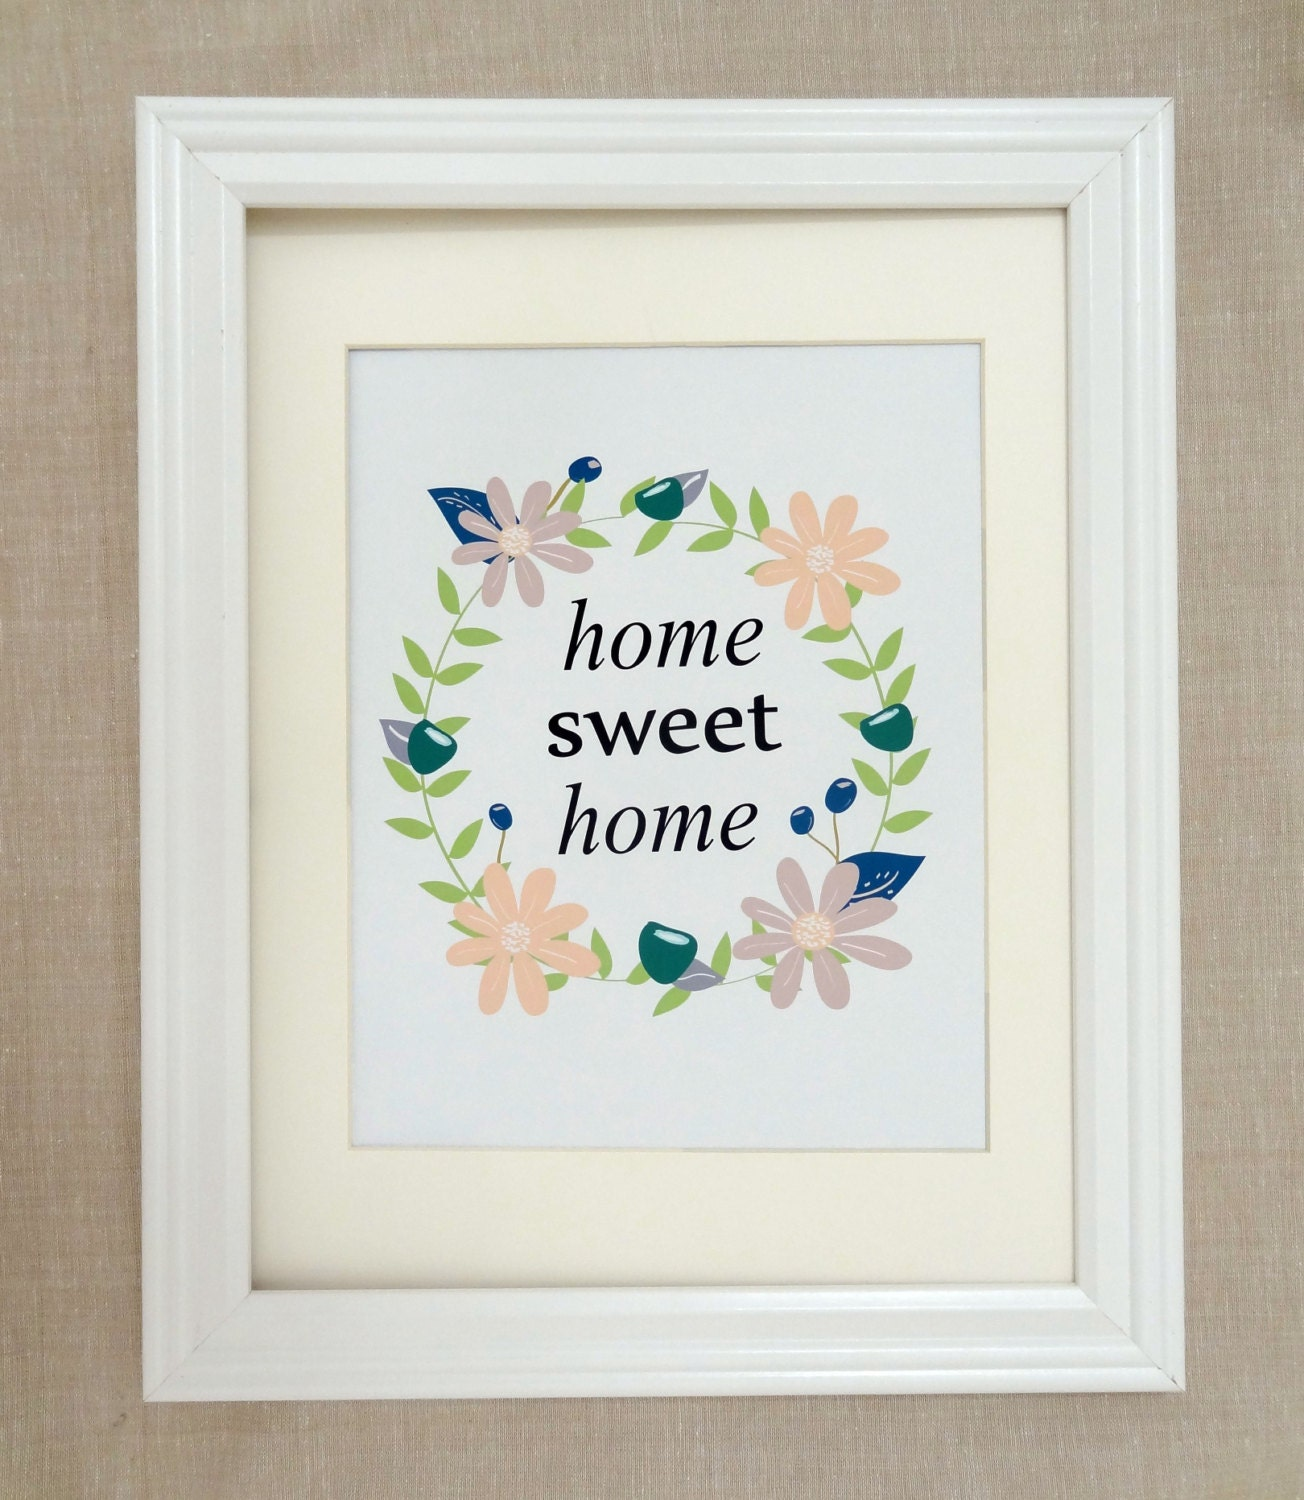 home sweet home sign home print home decor by cottonswirlshop. Black Bedroom Furniture Sets. Home Design Ideas